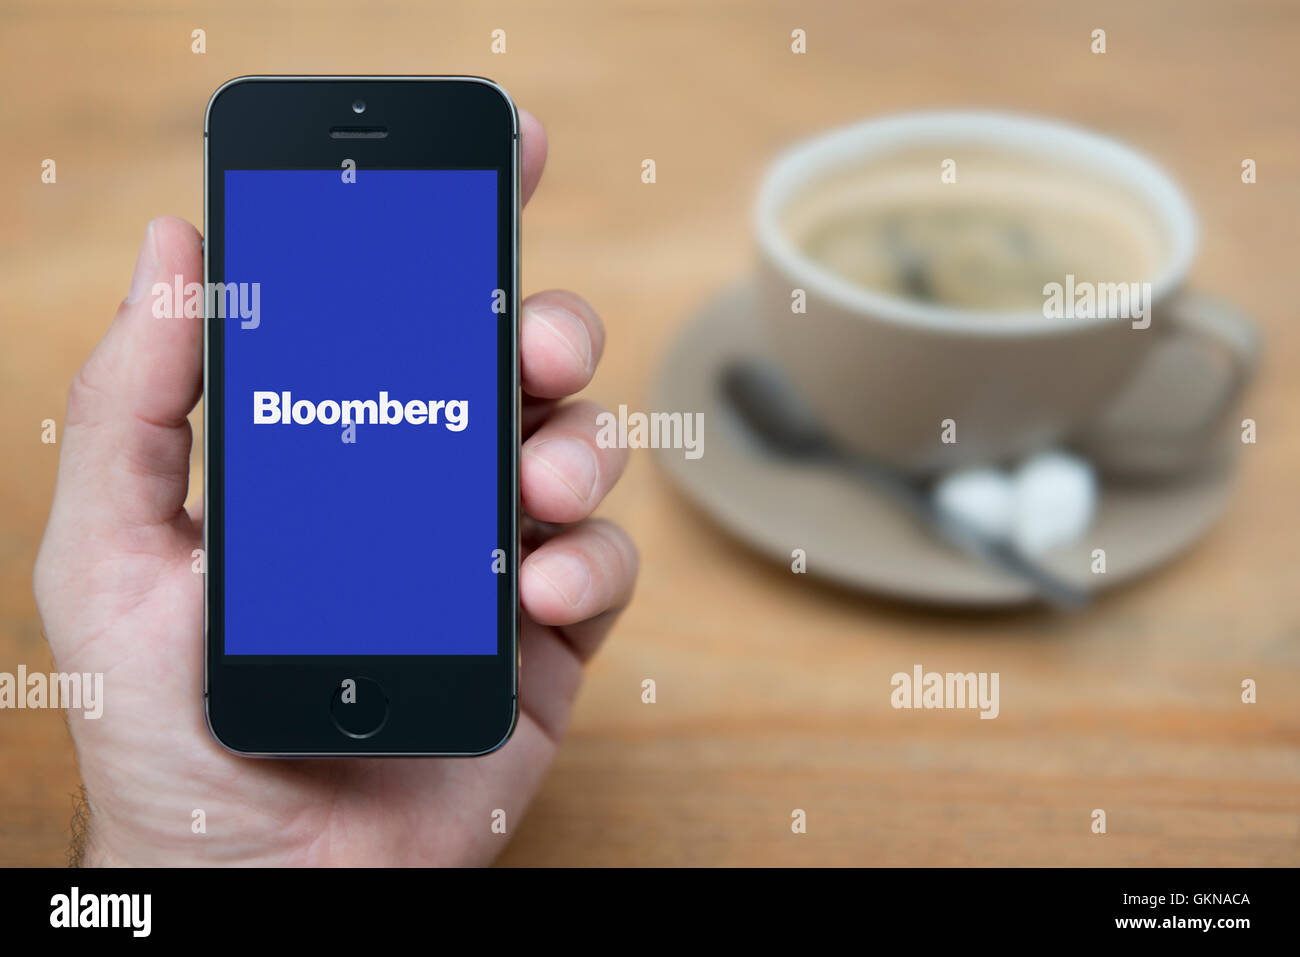 A man looks at his iPhone which displays the Bloomberg logo, while sat with a cup of coffee (Editorial use only). - Stock Image